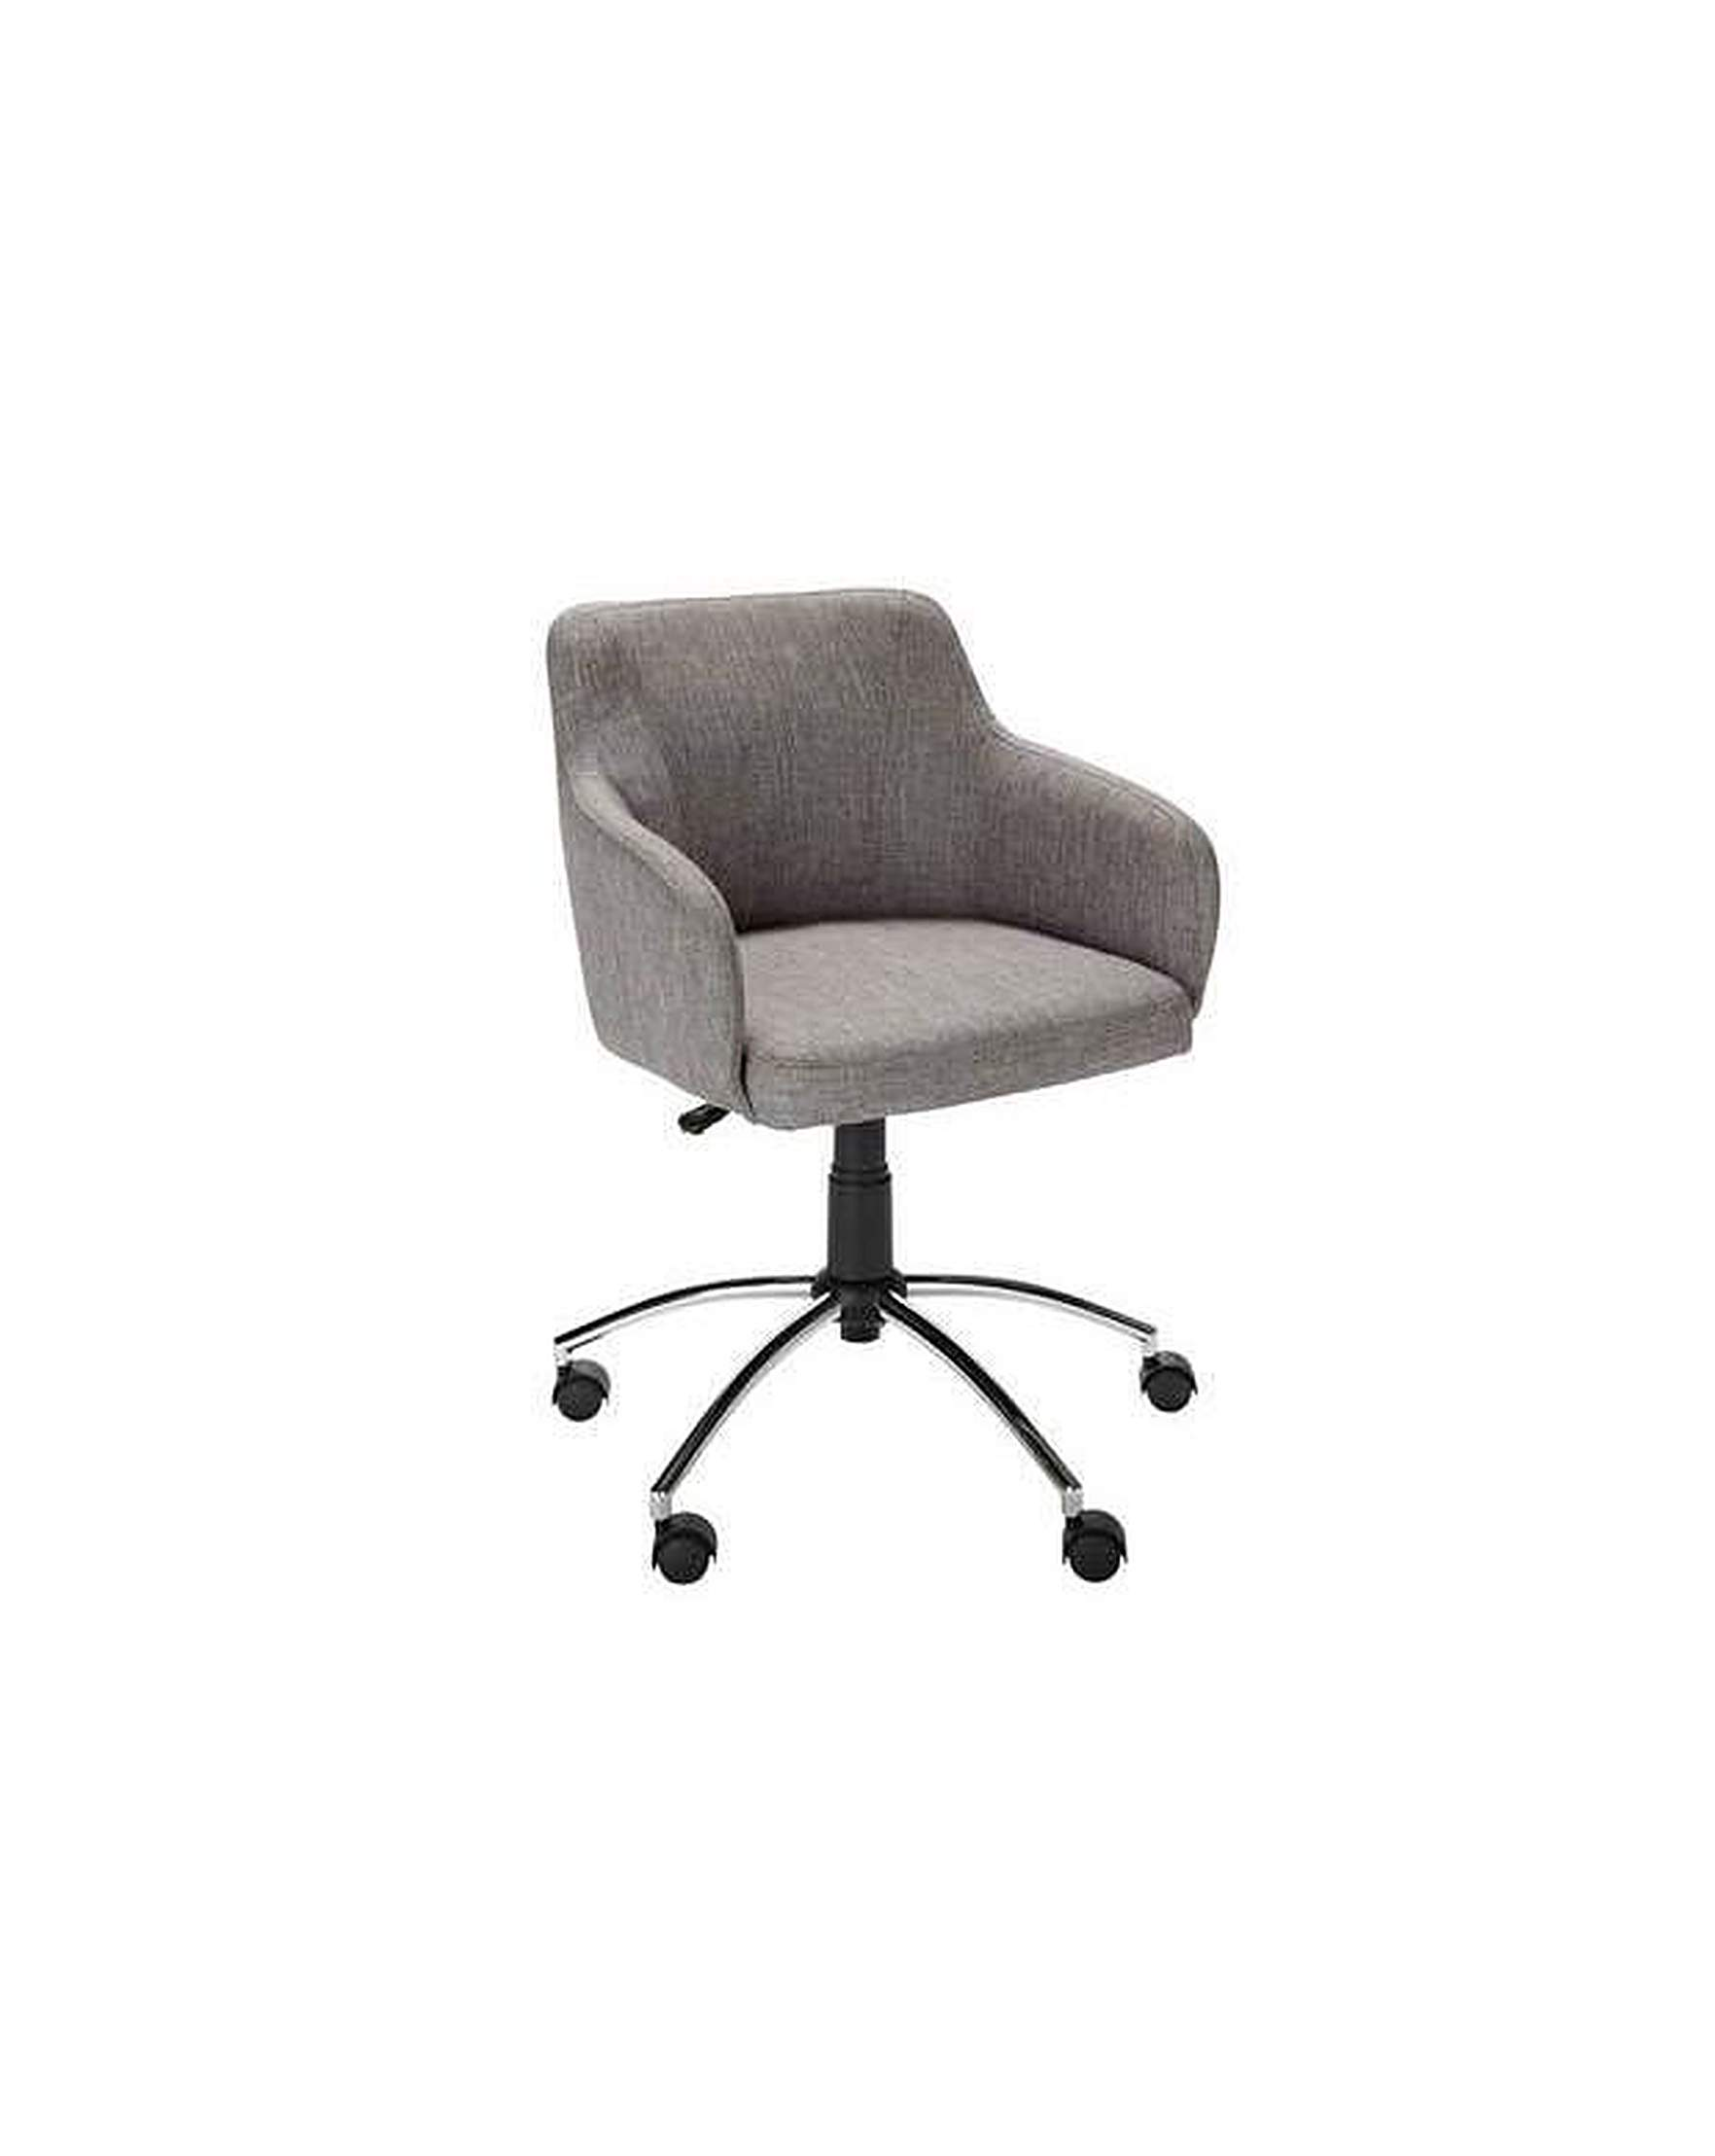 white since en is in swivel comfortably height ll gb stools rfj light grey sit benches sporren vissle office ikea seating products you chair chairs adjustable the